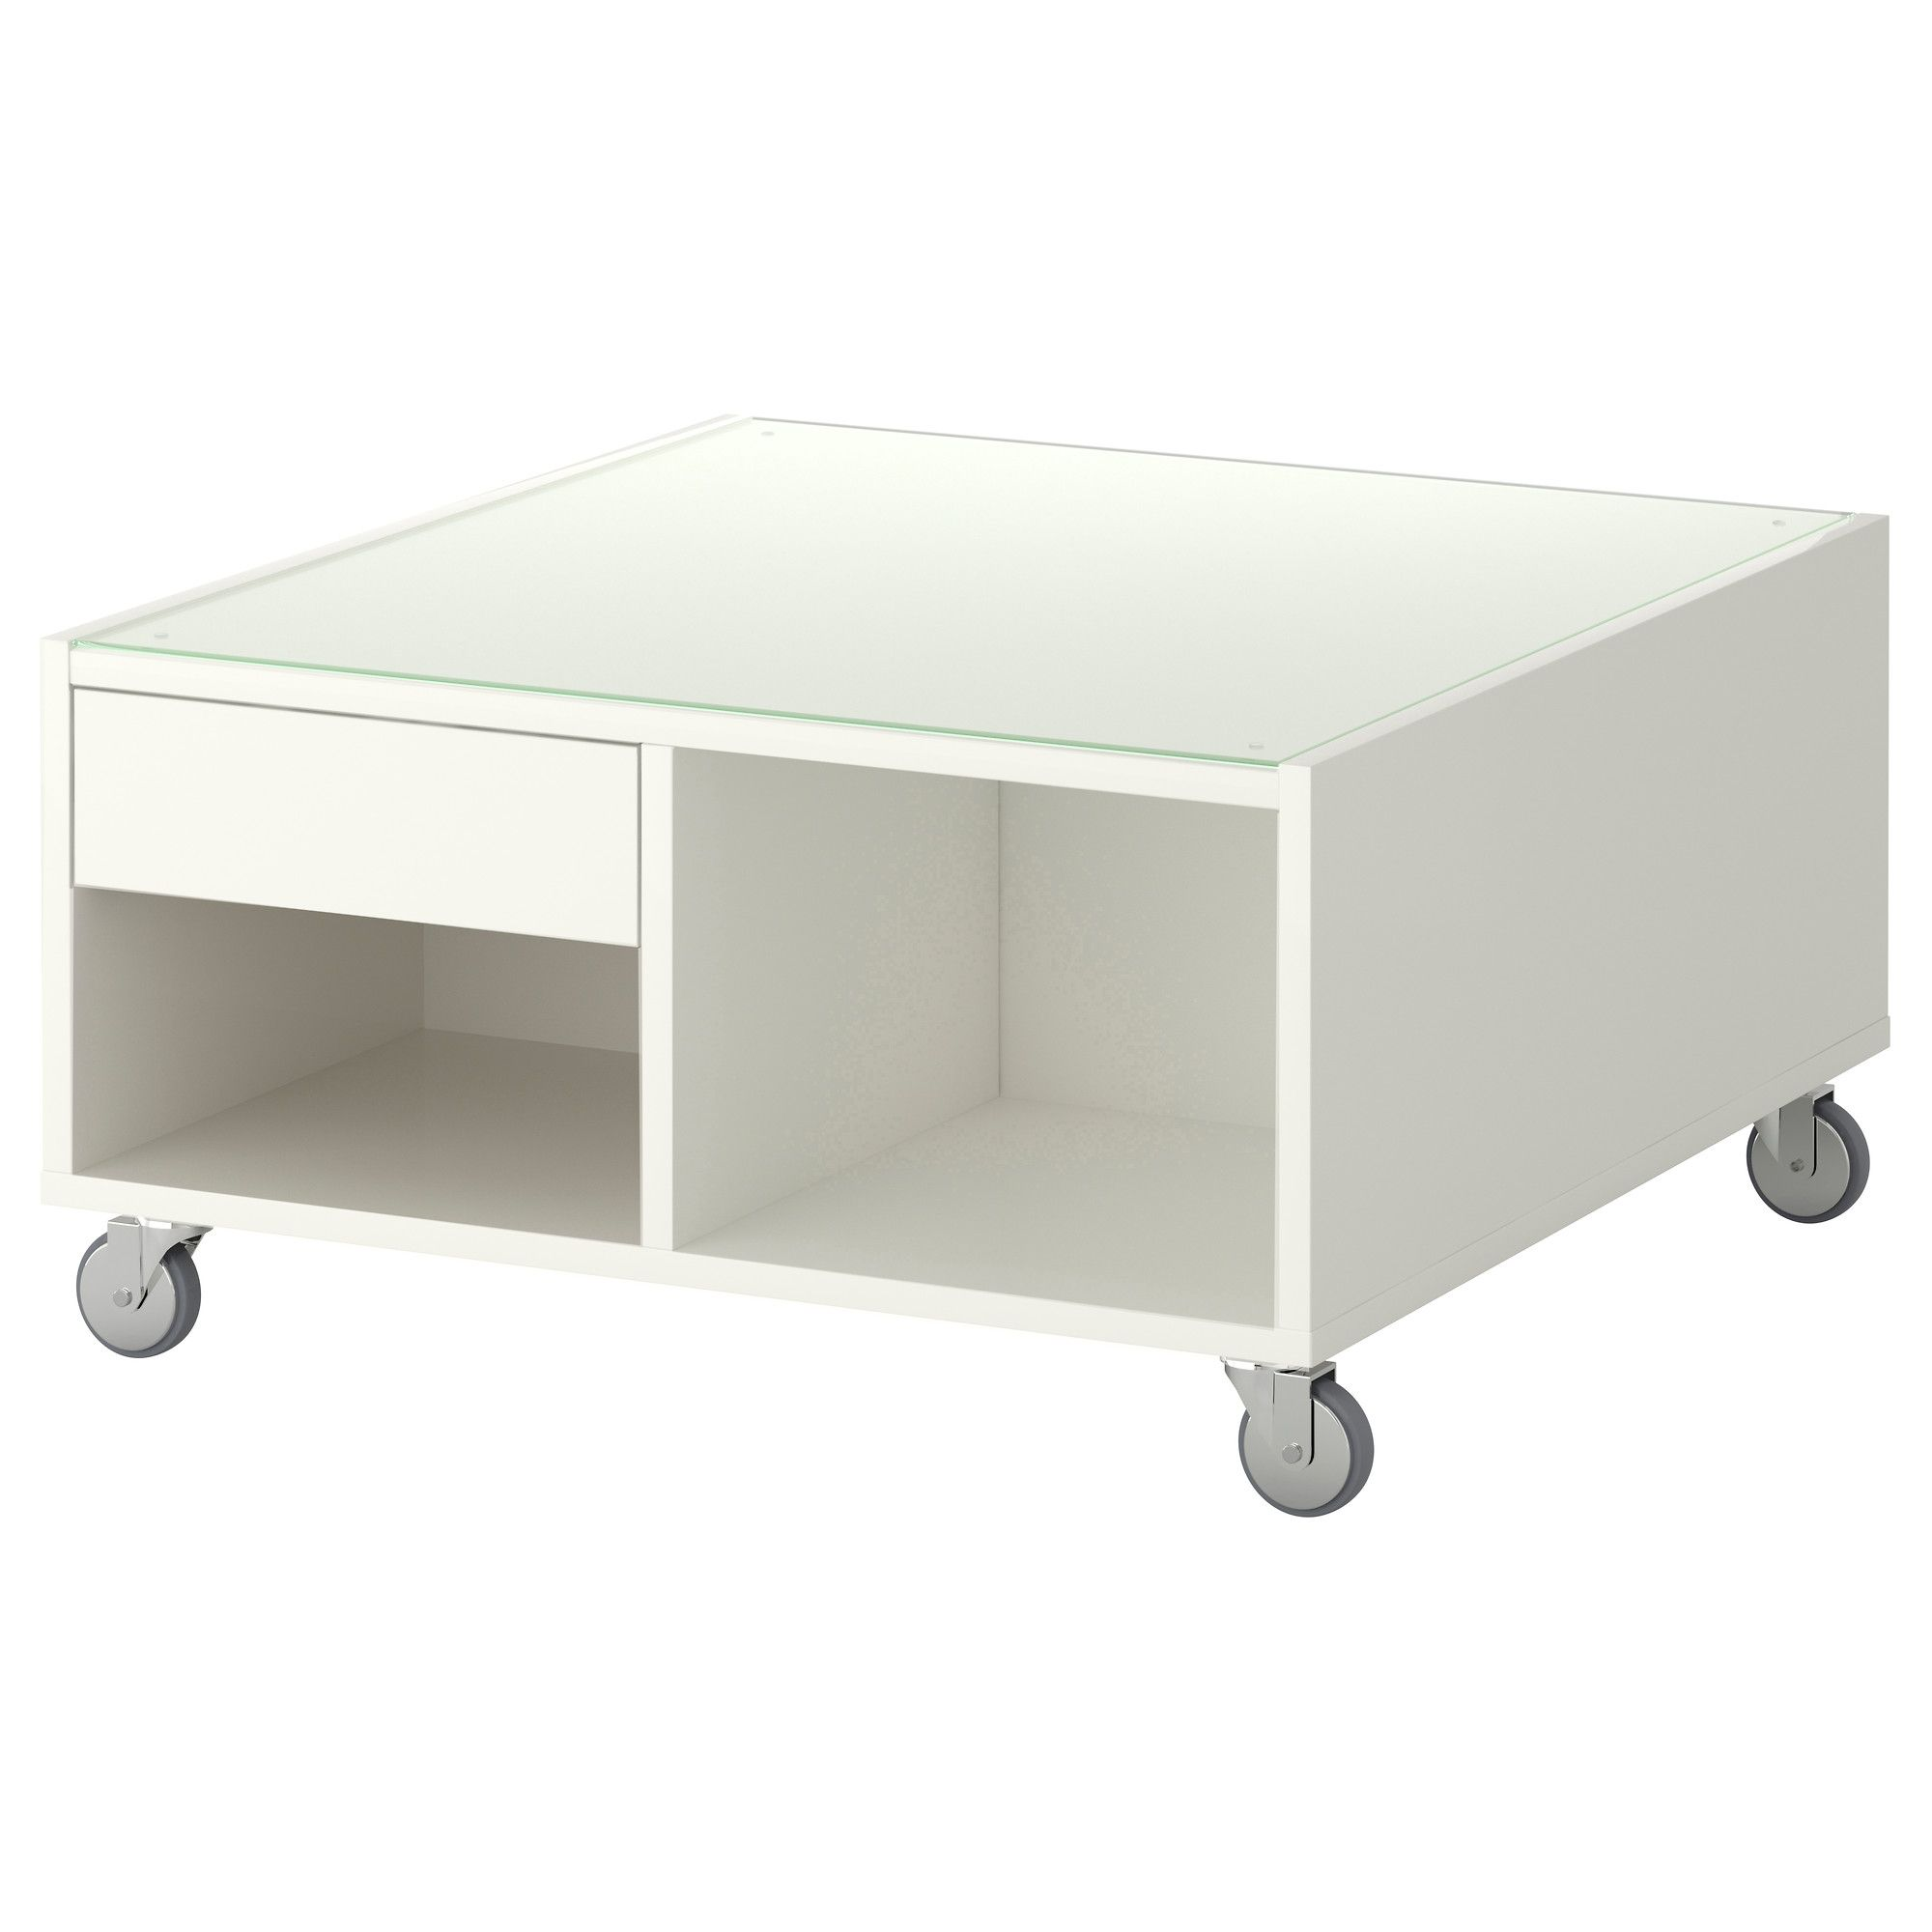 $169.00 IKEA BOKSEL Coffee Table   White   Veneered Surface Gives The Table  A Natural Look And Feel. Top In Tempered Glass. Protects Surface From  Stains.